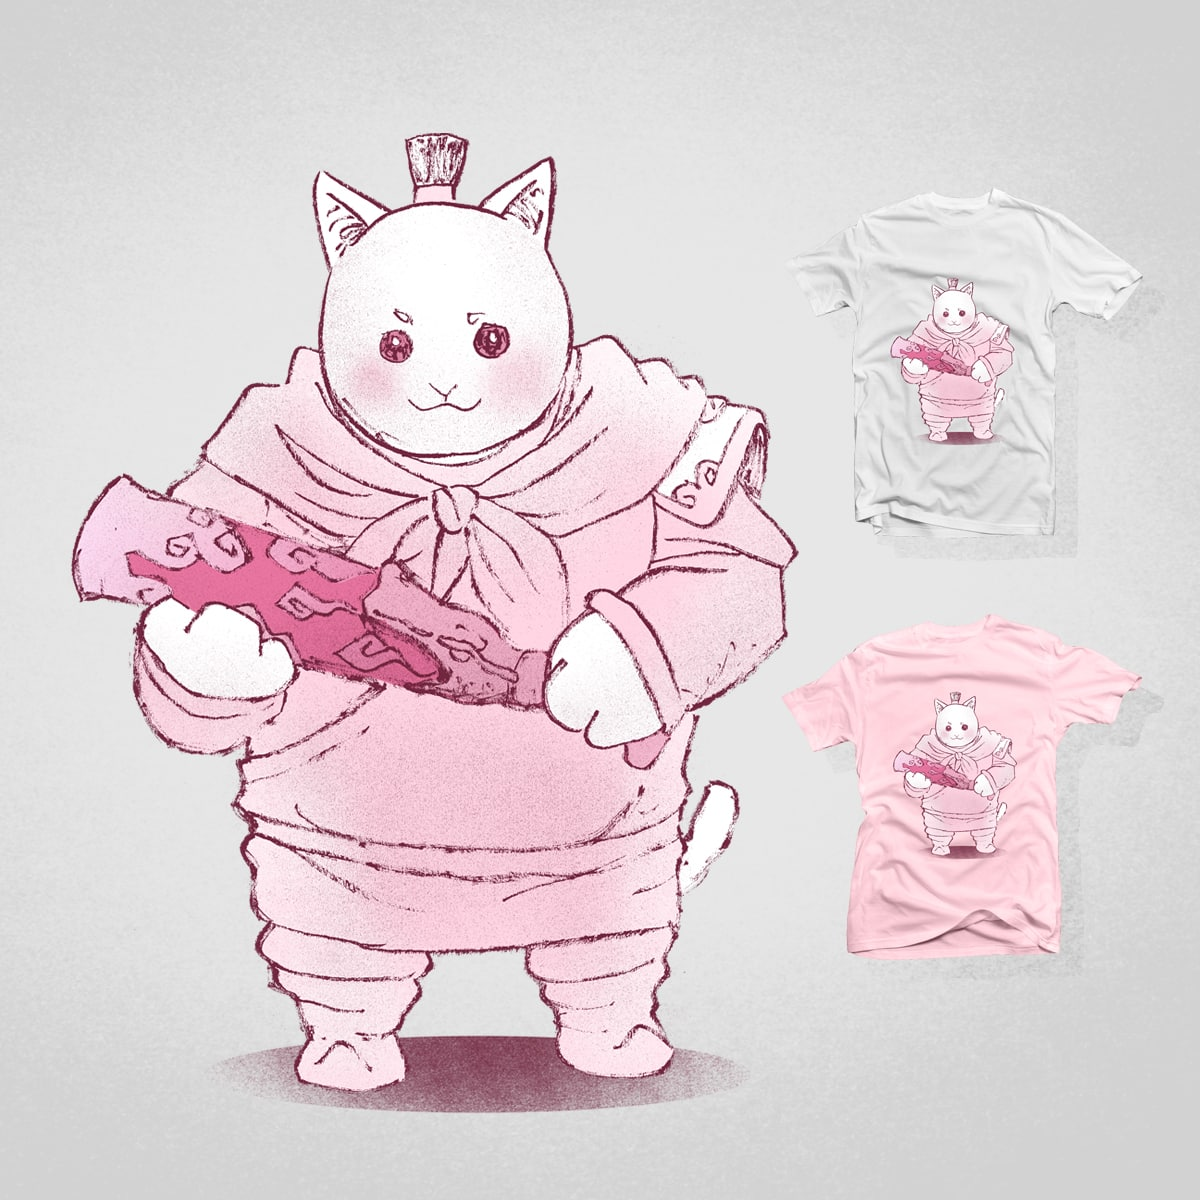 I'm no pussycat. by nerrik on Threadless